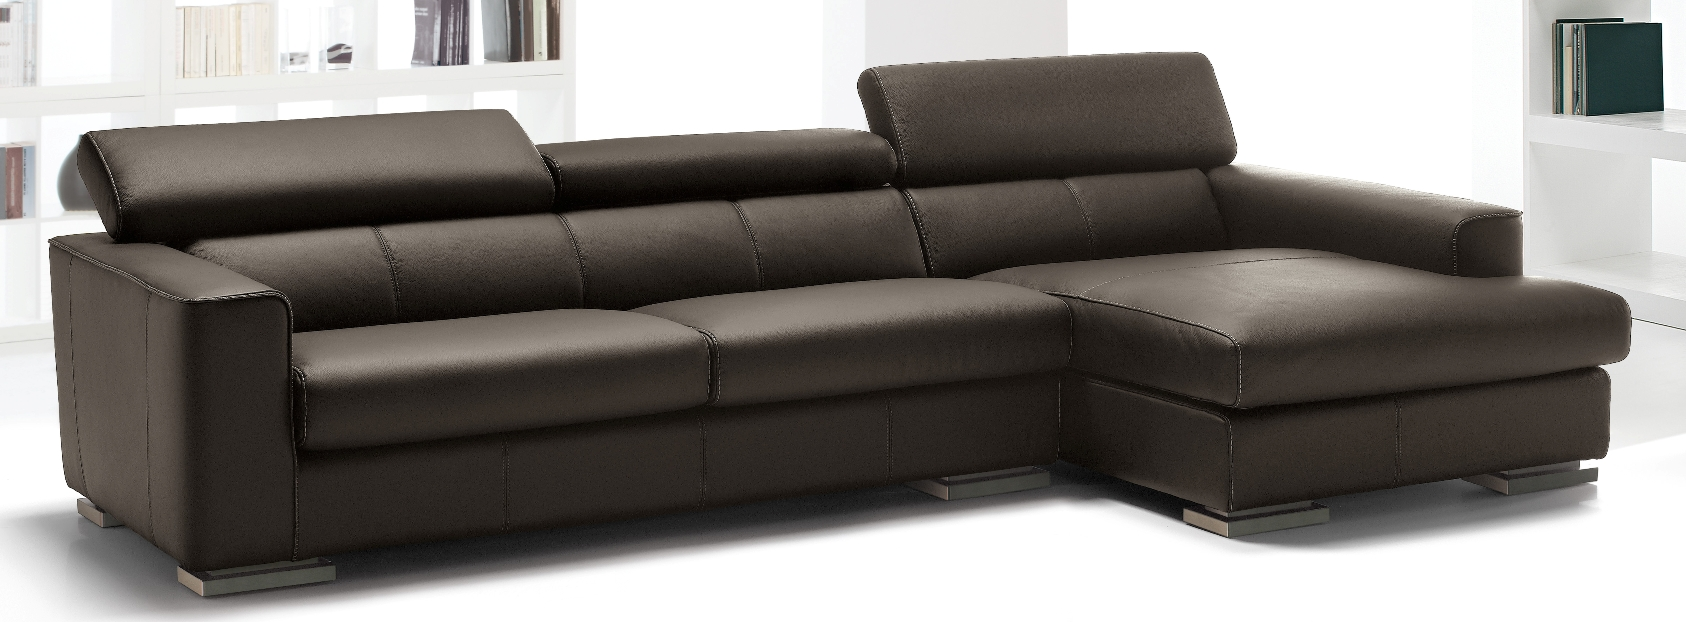 modern leather sofa chair - modern luxury leather sofa fine home furnishings high quality